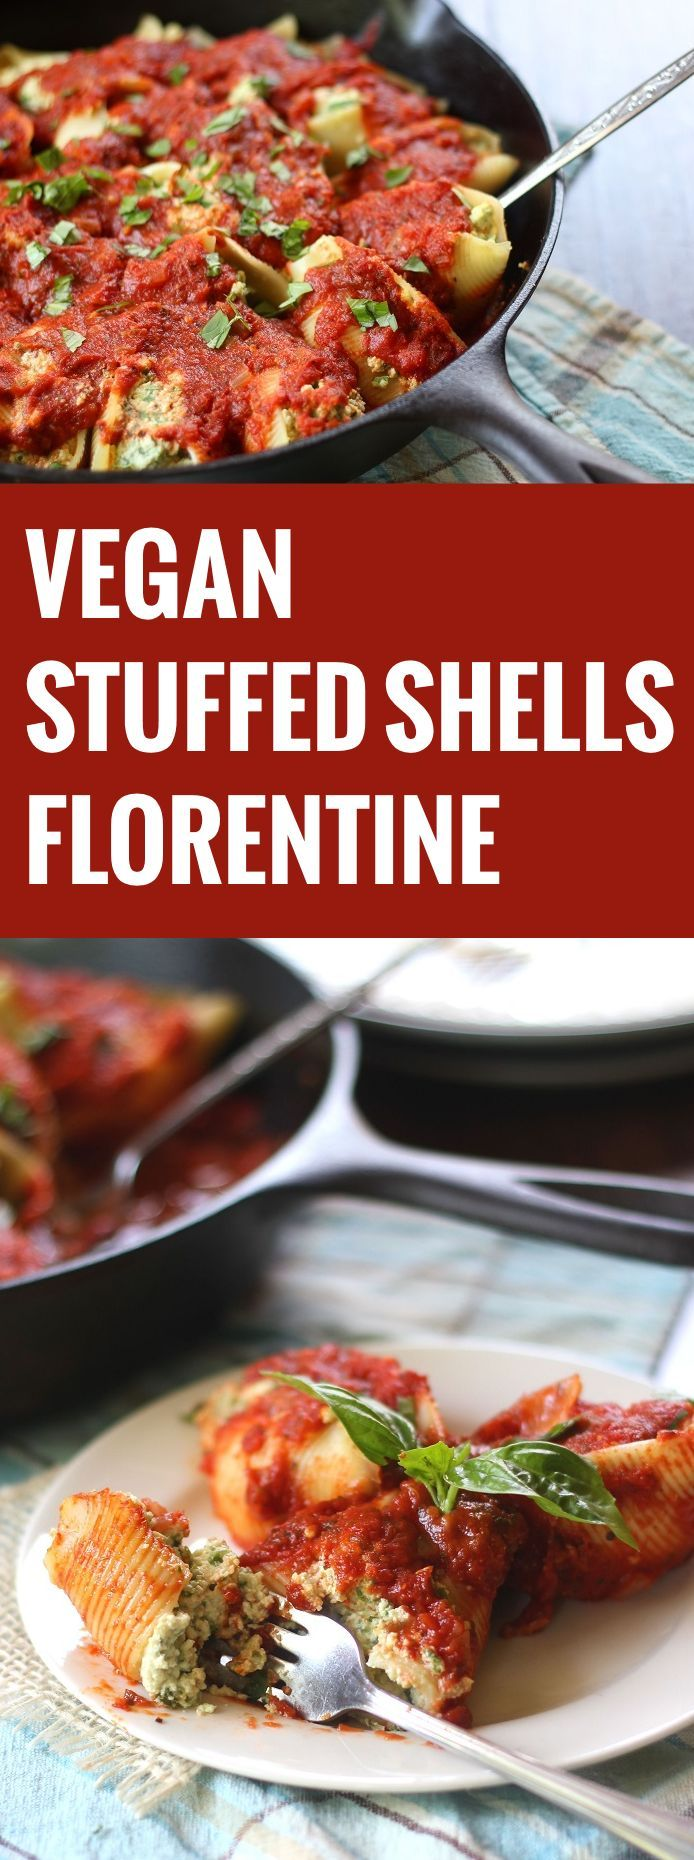 Rich cashew-tofu ricotta with fresh spinach is stuffed into tender pasta pockets and smothered in garlicky tomato sauce to make these vegan stuffed shells.